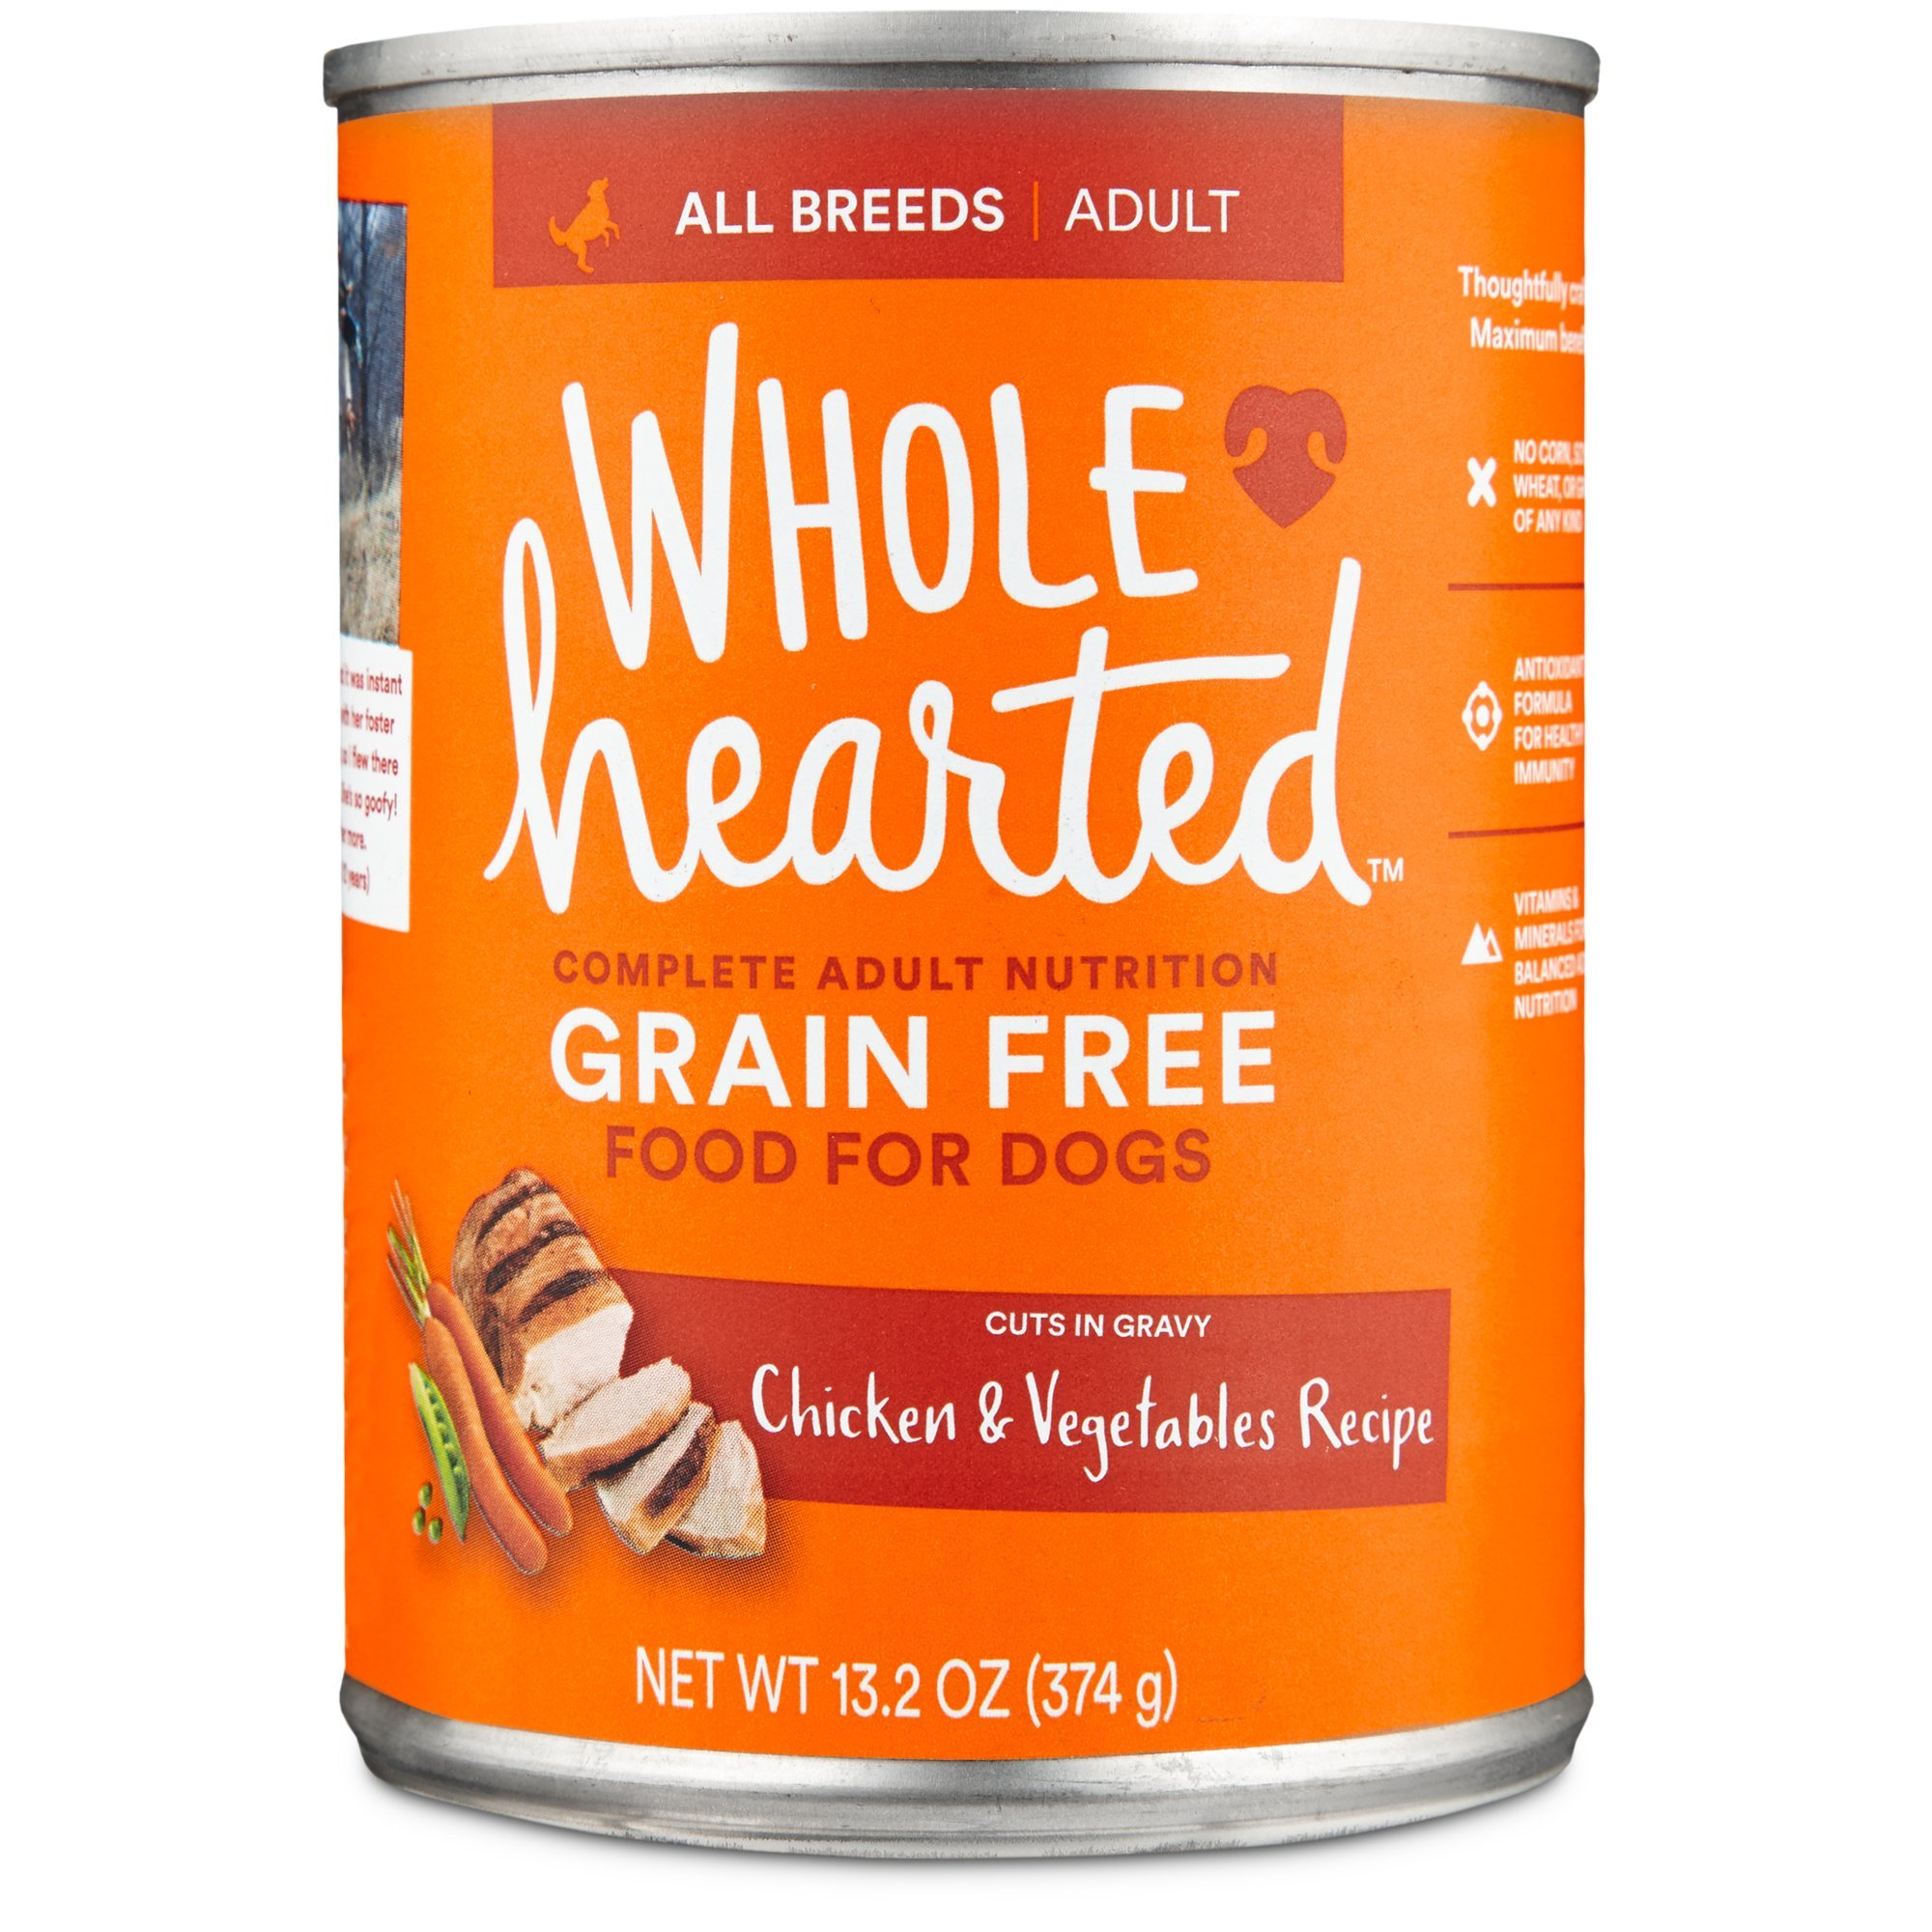 WholeHearted Grain Free Adult Chicken Vegetable Recipe Wet Dog Food